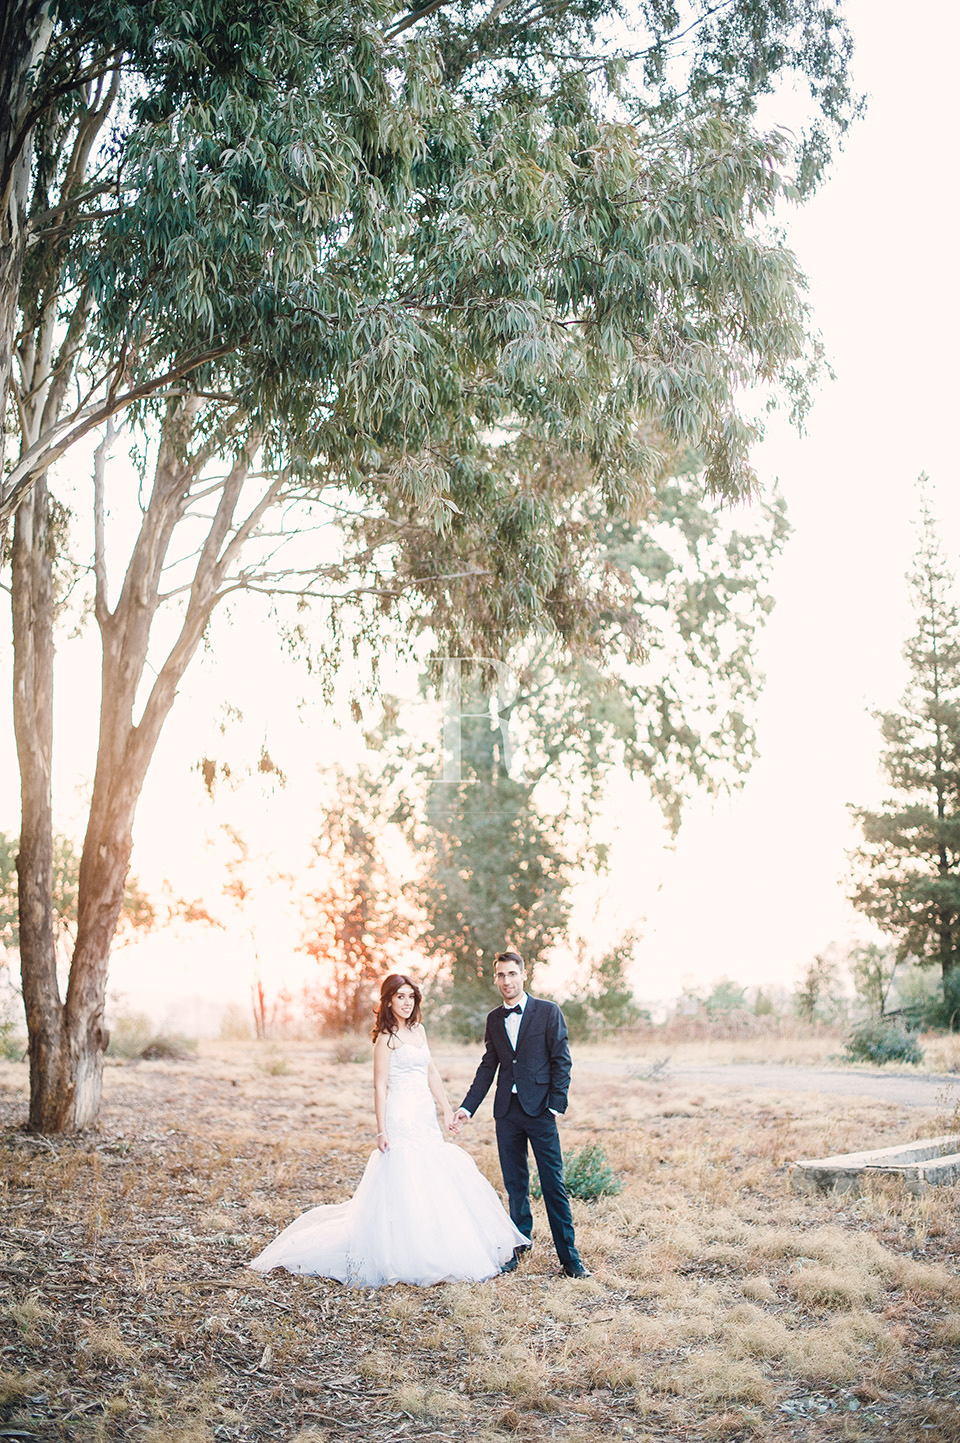 RYAN PARKER PHOTOGRAPHY_WEDDINGS_PRETORIA_ROSEMARY HILL_M&N -0513.jpg